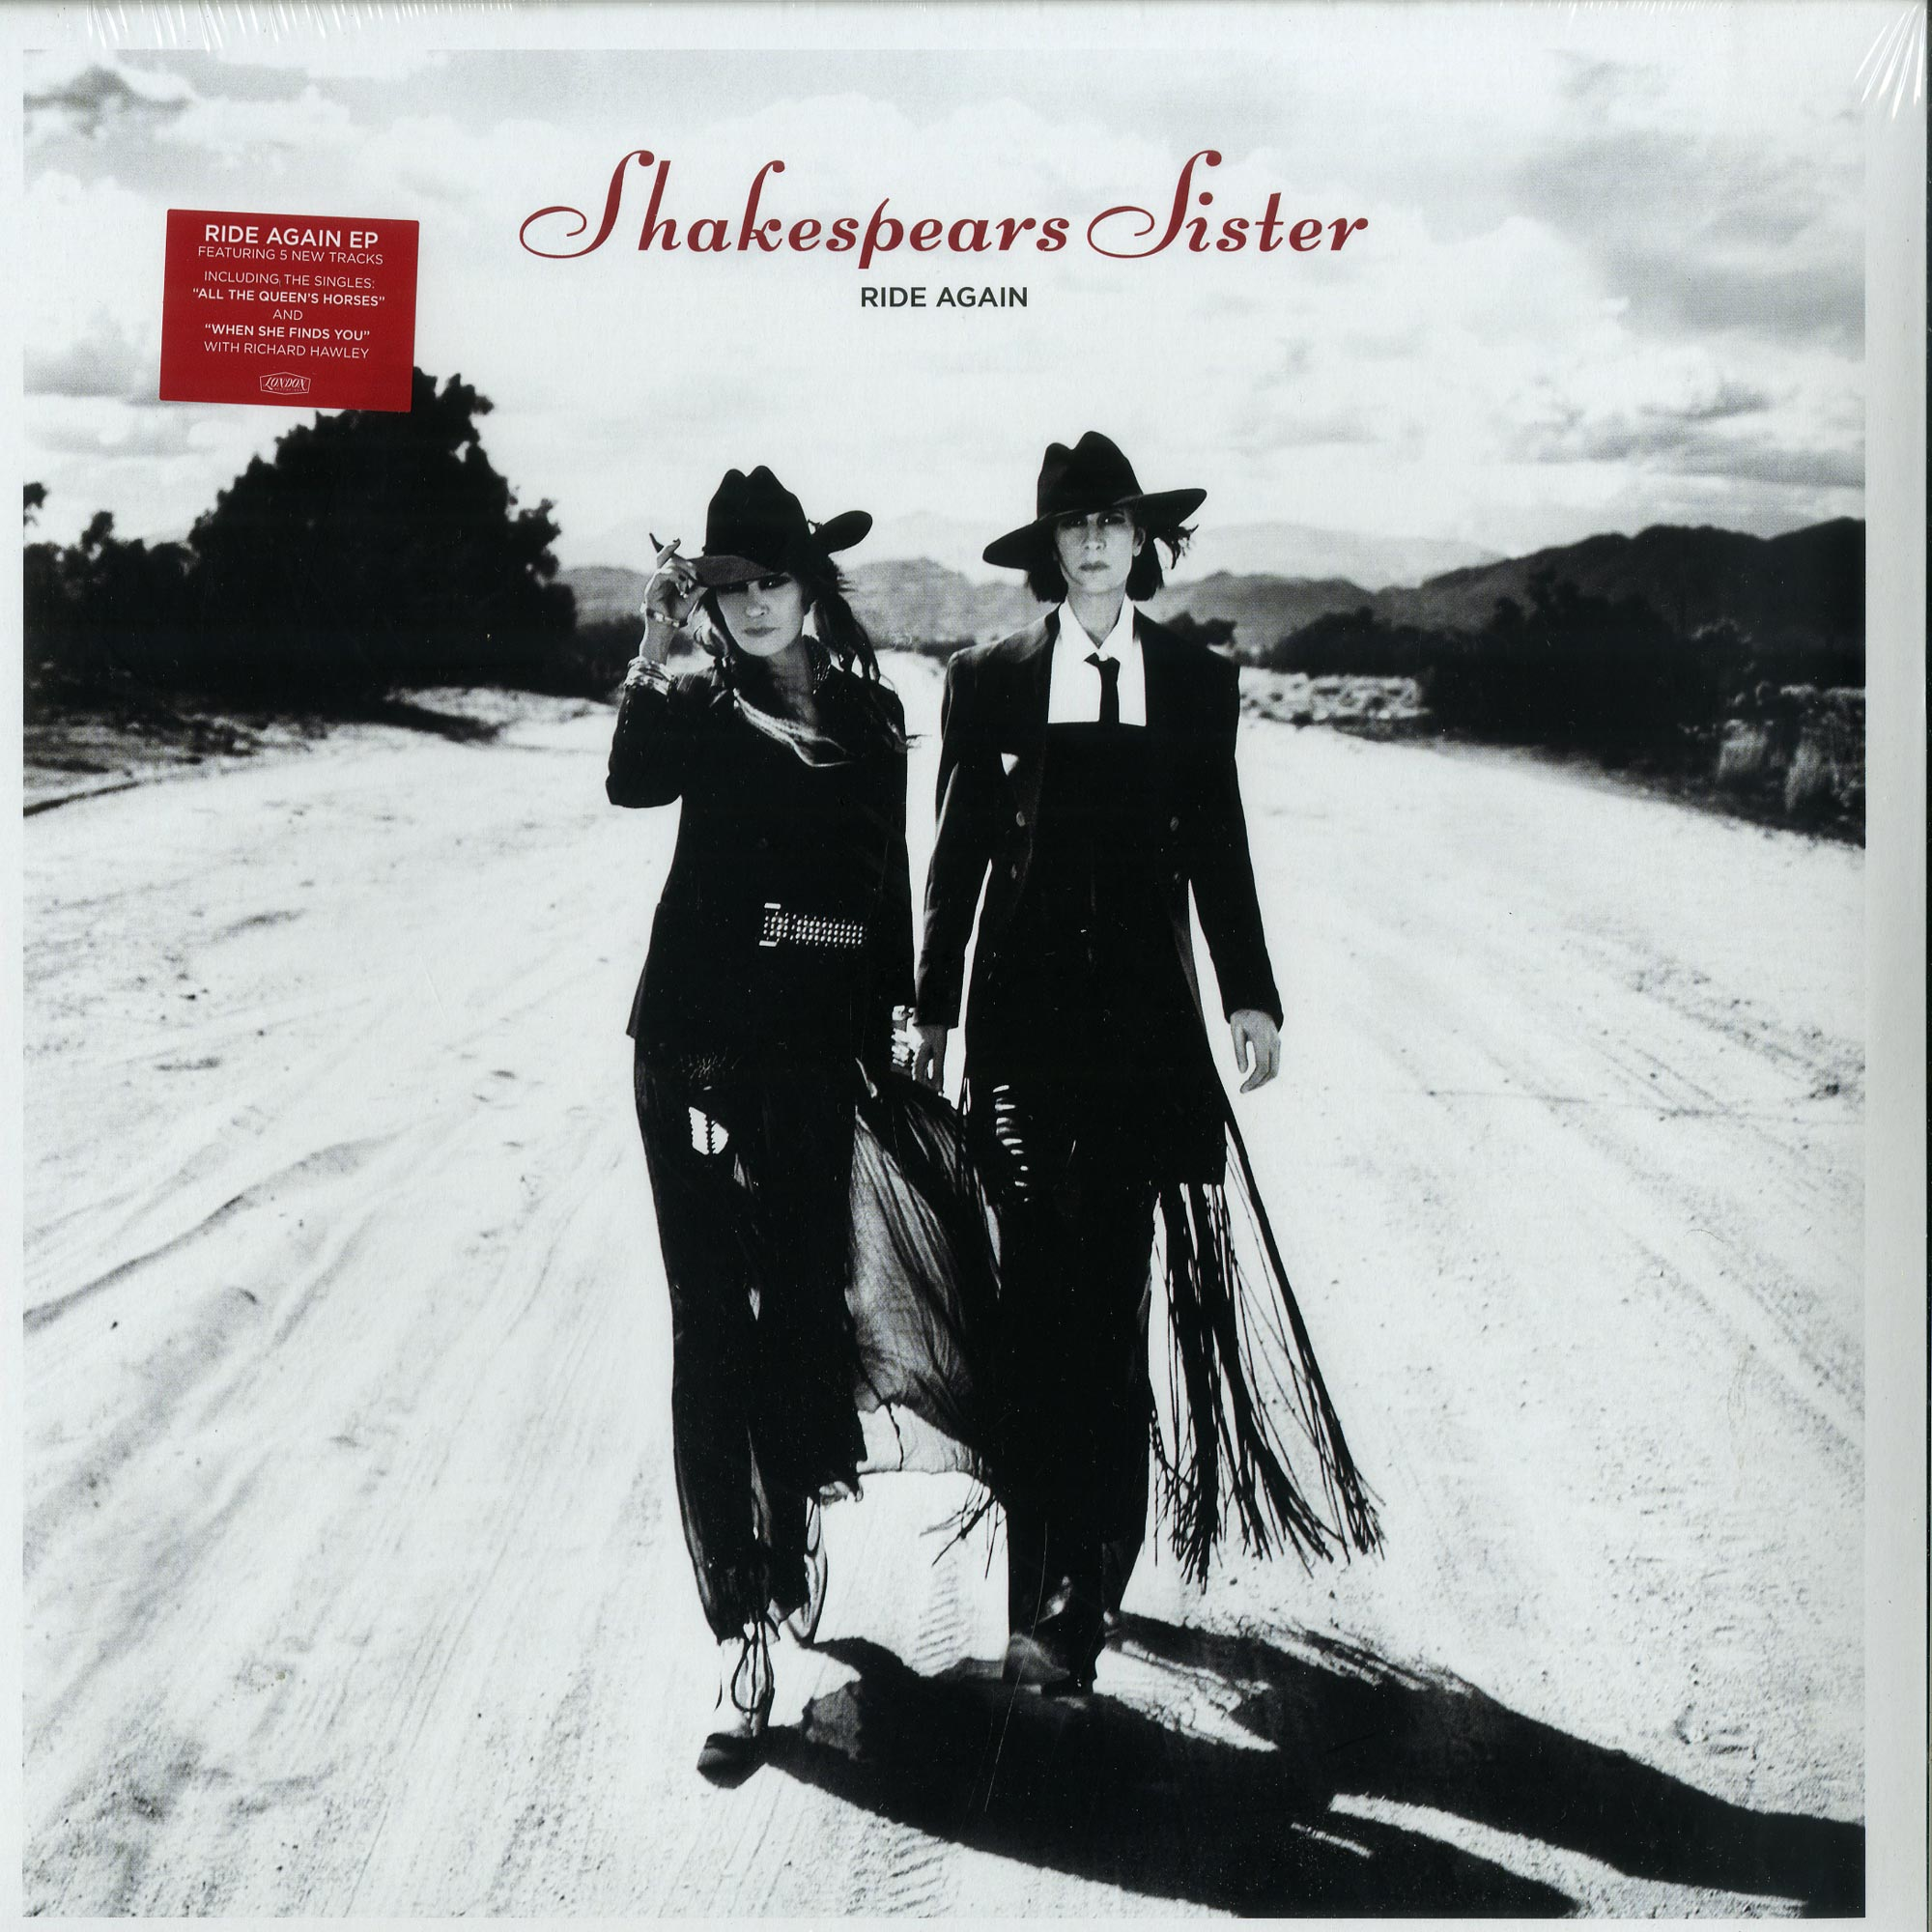 Shakespears Sister - RIDE AGAIN EP